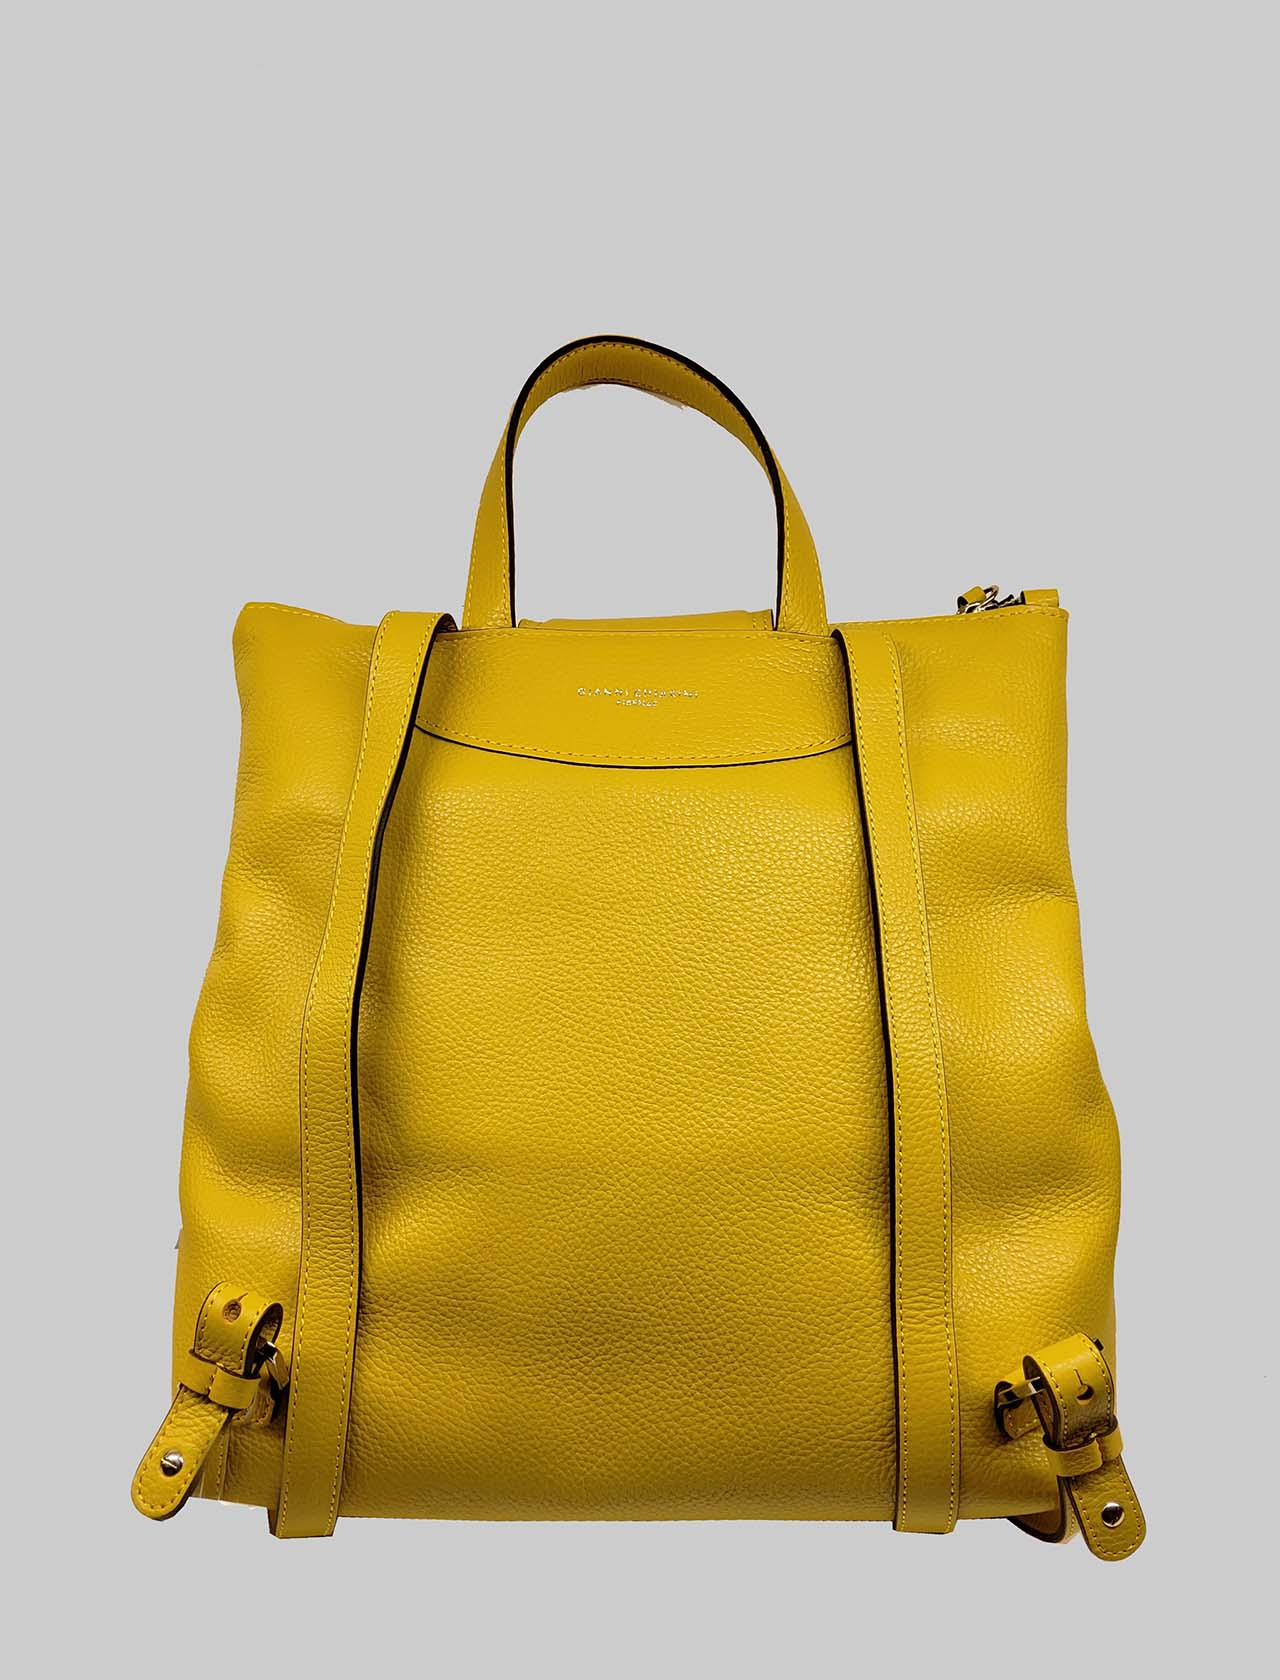 Woman Backpack Giada with Central Zipper In Mustard Leather With Handle And Adjustable Straps Gianni Chiarini | Bags and backpacks | ZN704011040